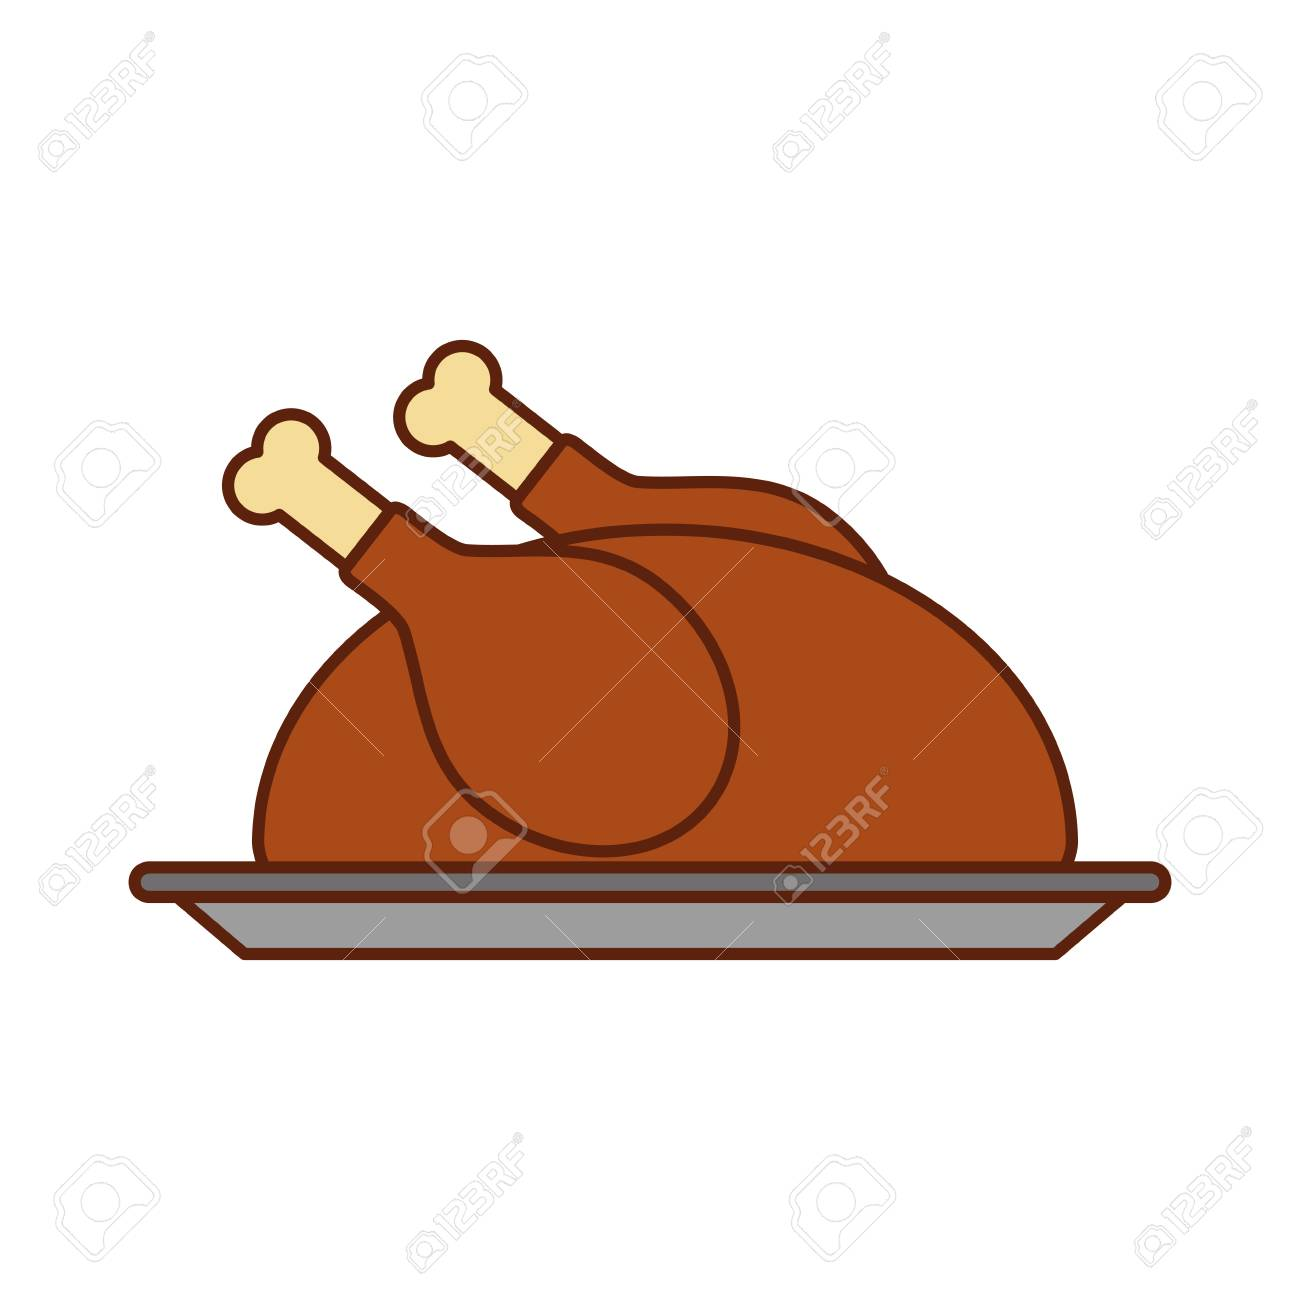 Turkey Dinner Cartoon Traditional Food For Thanksgiving Day Vector Royalty Free Cliparts Vectors And Stock Illustration Image 88456316